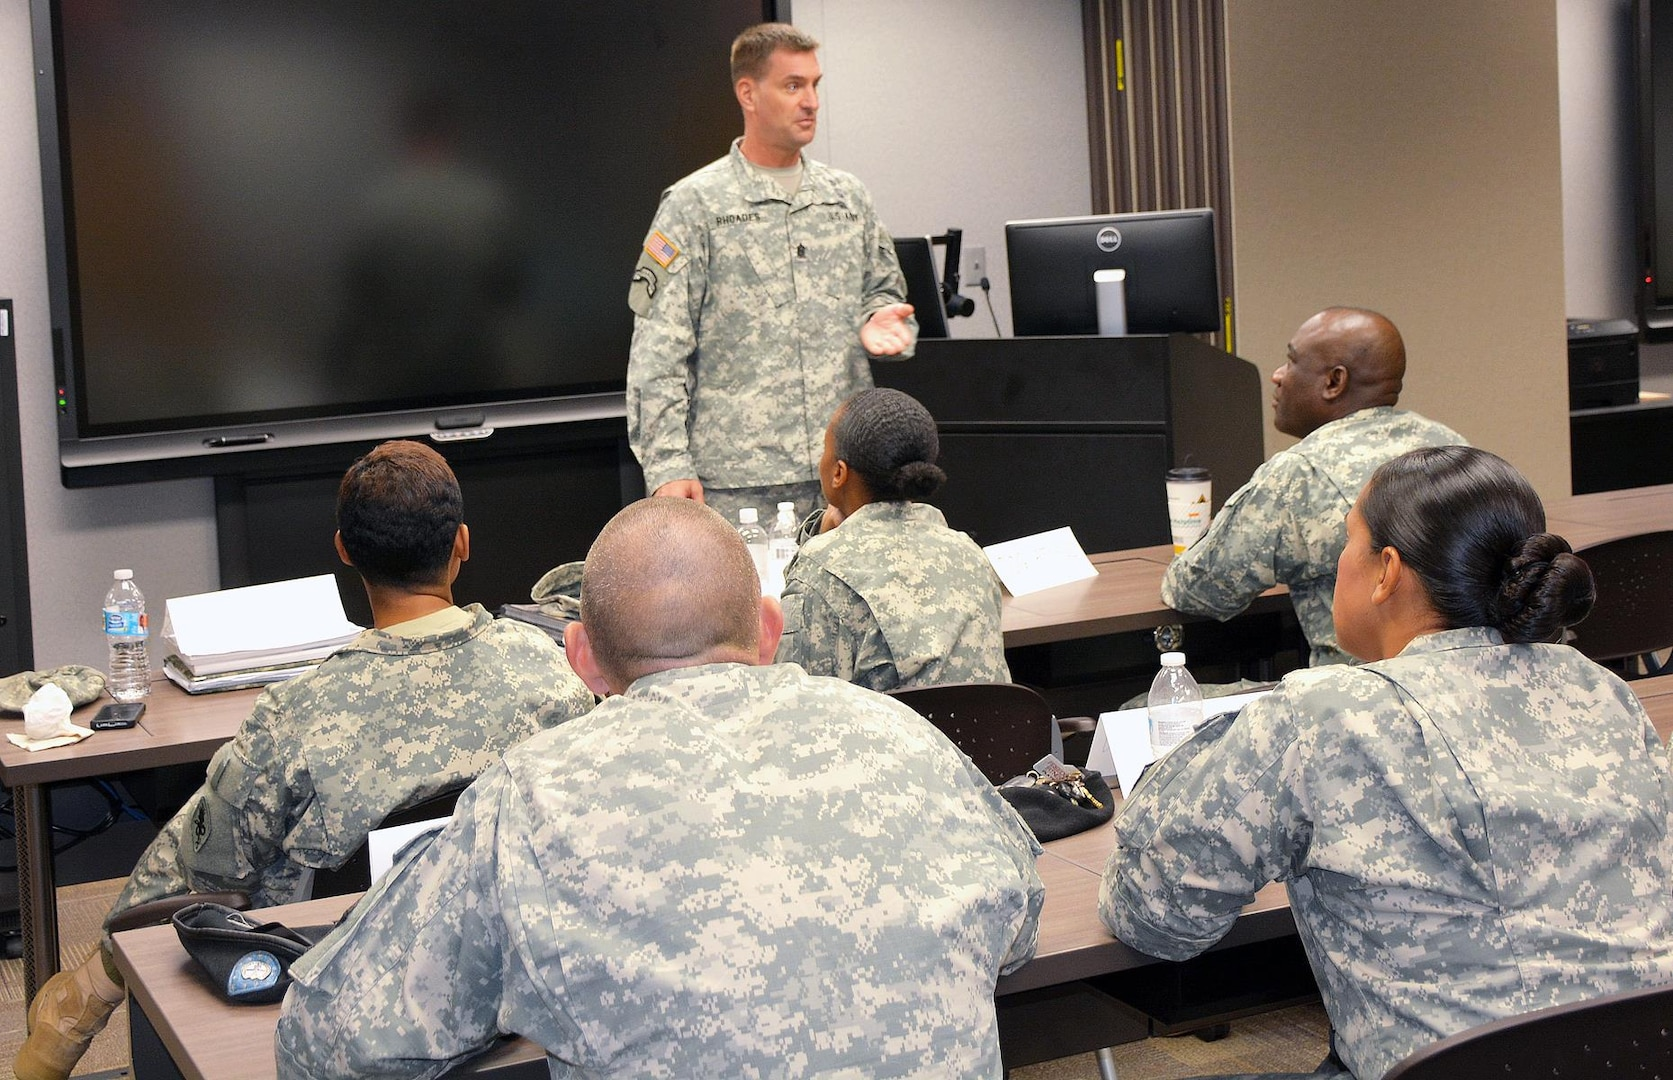 U.S. Army Medical Department Center and School, U.S. Army Health Readiness Center of Excellence, Command Sgt. Maj. Andrew Rhoades speaks to a class attending the Sexual Harassment/Assault Response and Prevention course Sept. 25 in Willis Hall, AMEDDC&S, HRCoE.  The training ensures AMEDDC&S HRCoE maintains a sufficient number of victim advocates and SHARP advisors to assist command teams with prevention and awareness, training and responding to reports of sexual harassment and sexual assault.